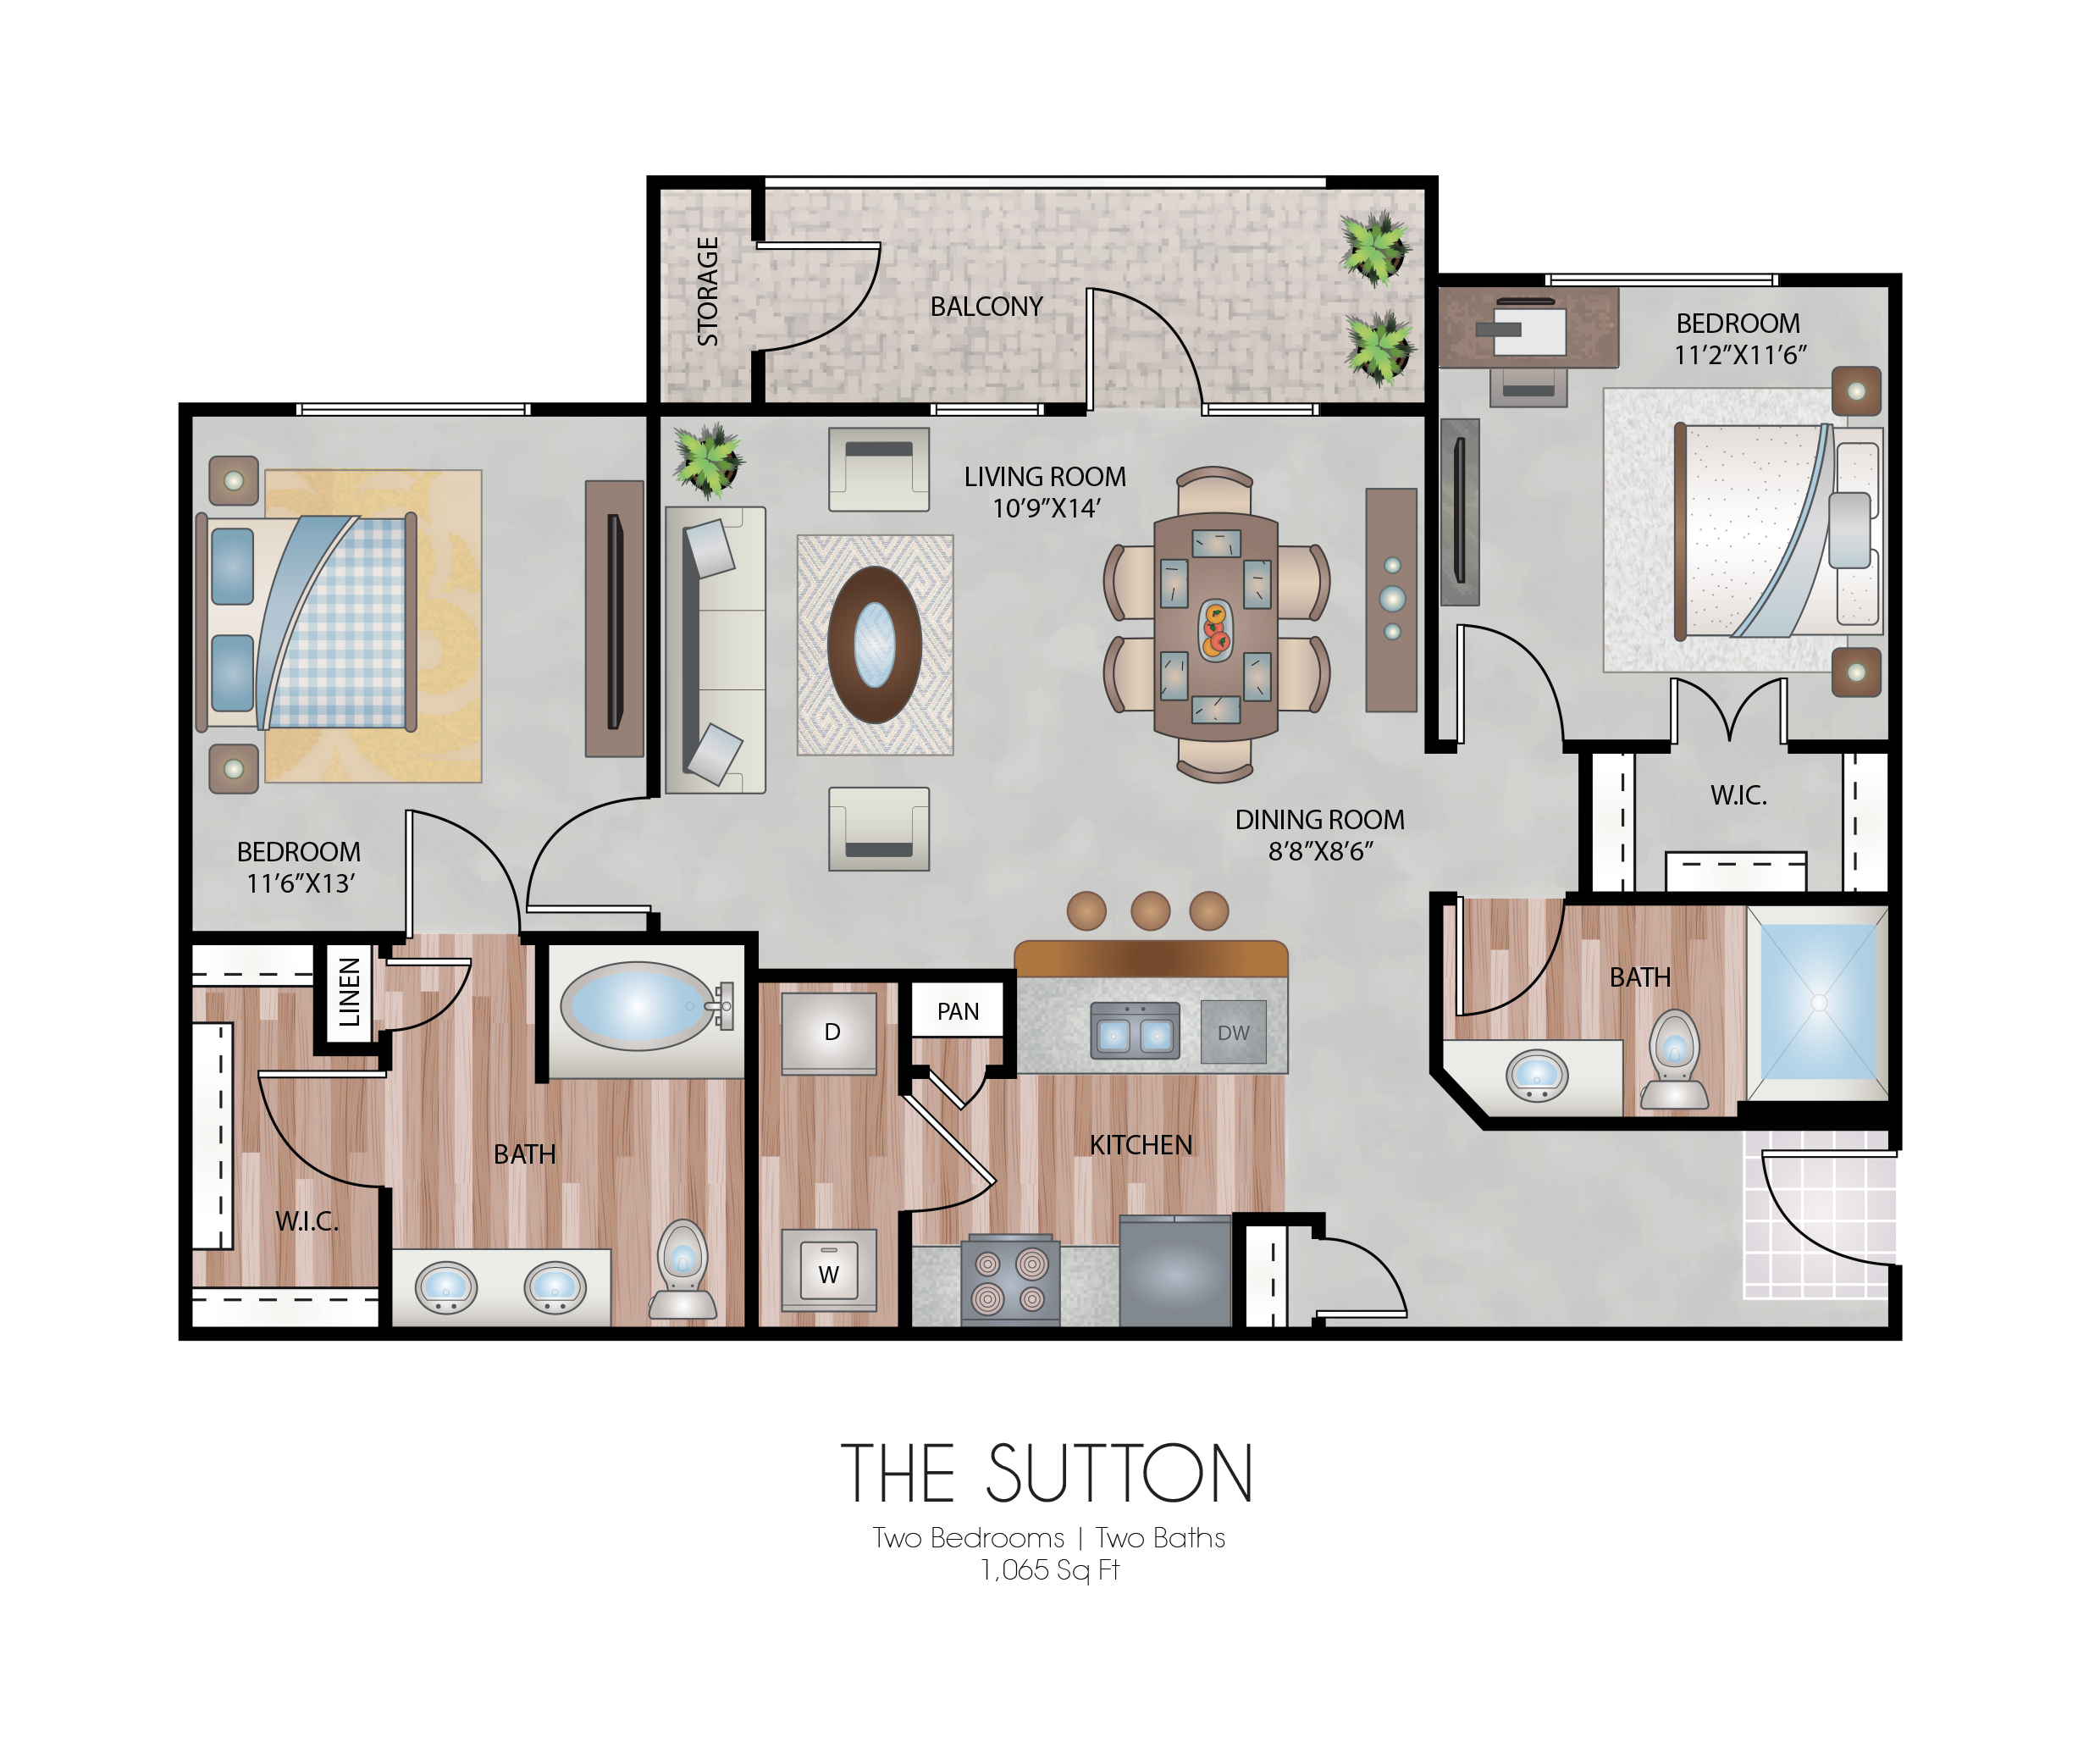 Floorplan - The Sutton image